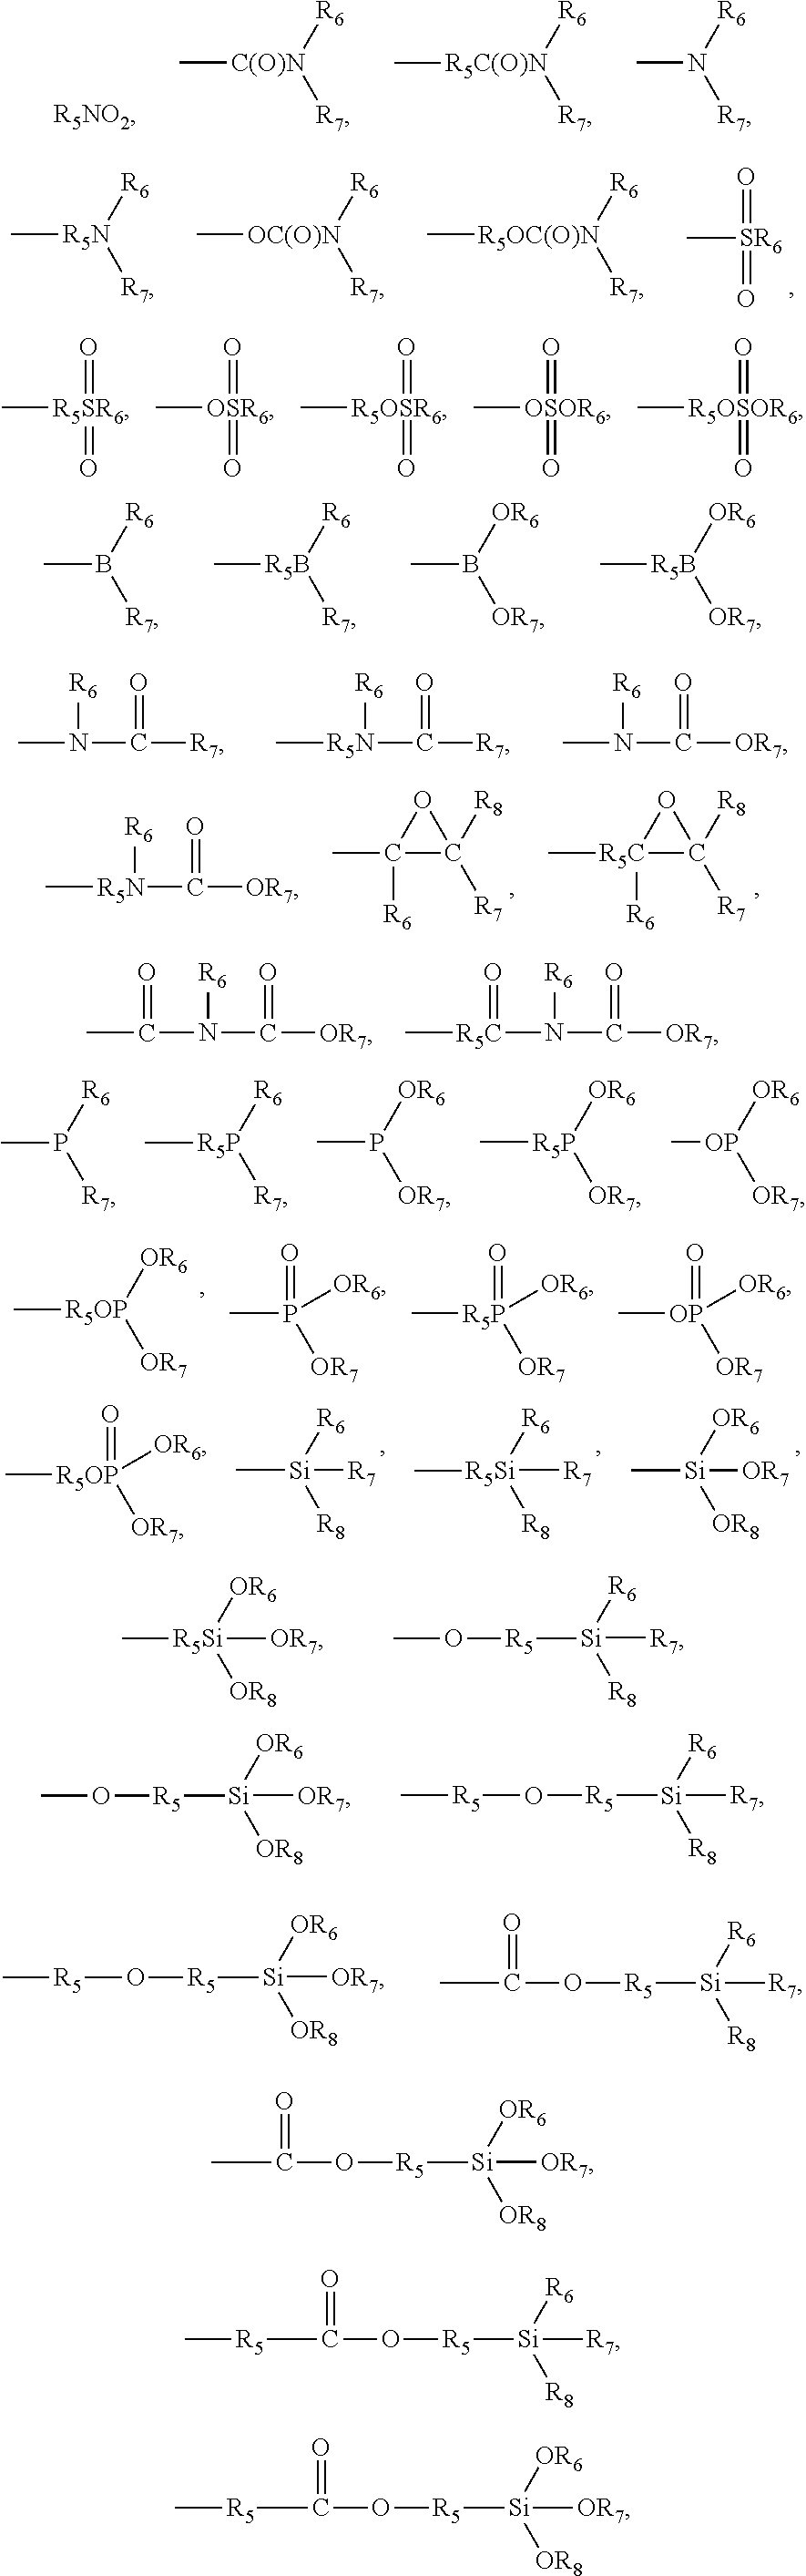 Us8946366b2 Cyclic Olefin Compound Photoreactive Polymer And Acac Ssr Wiring Figure Us08946366 20150203 C00008